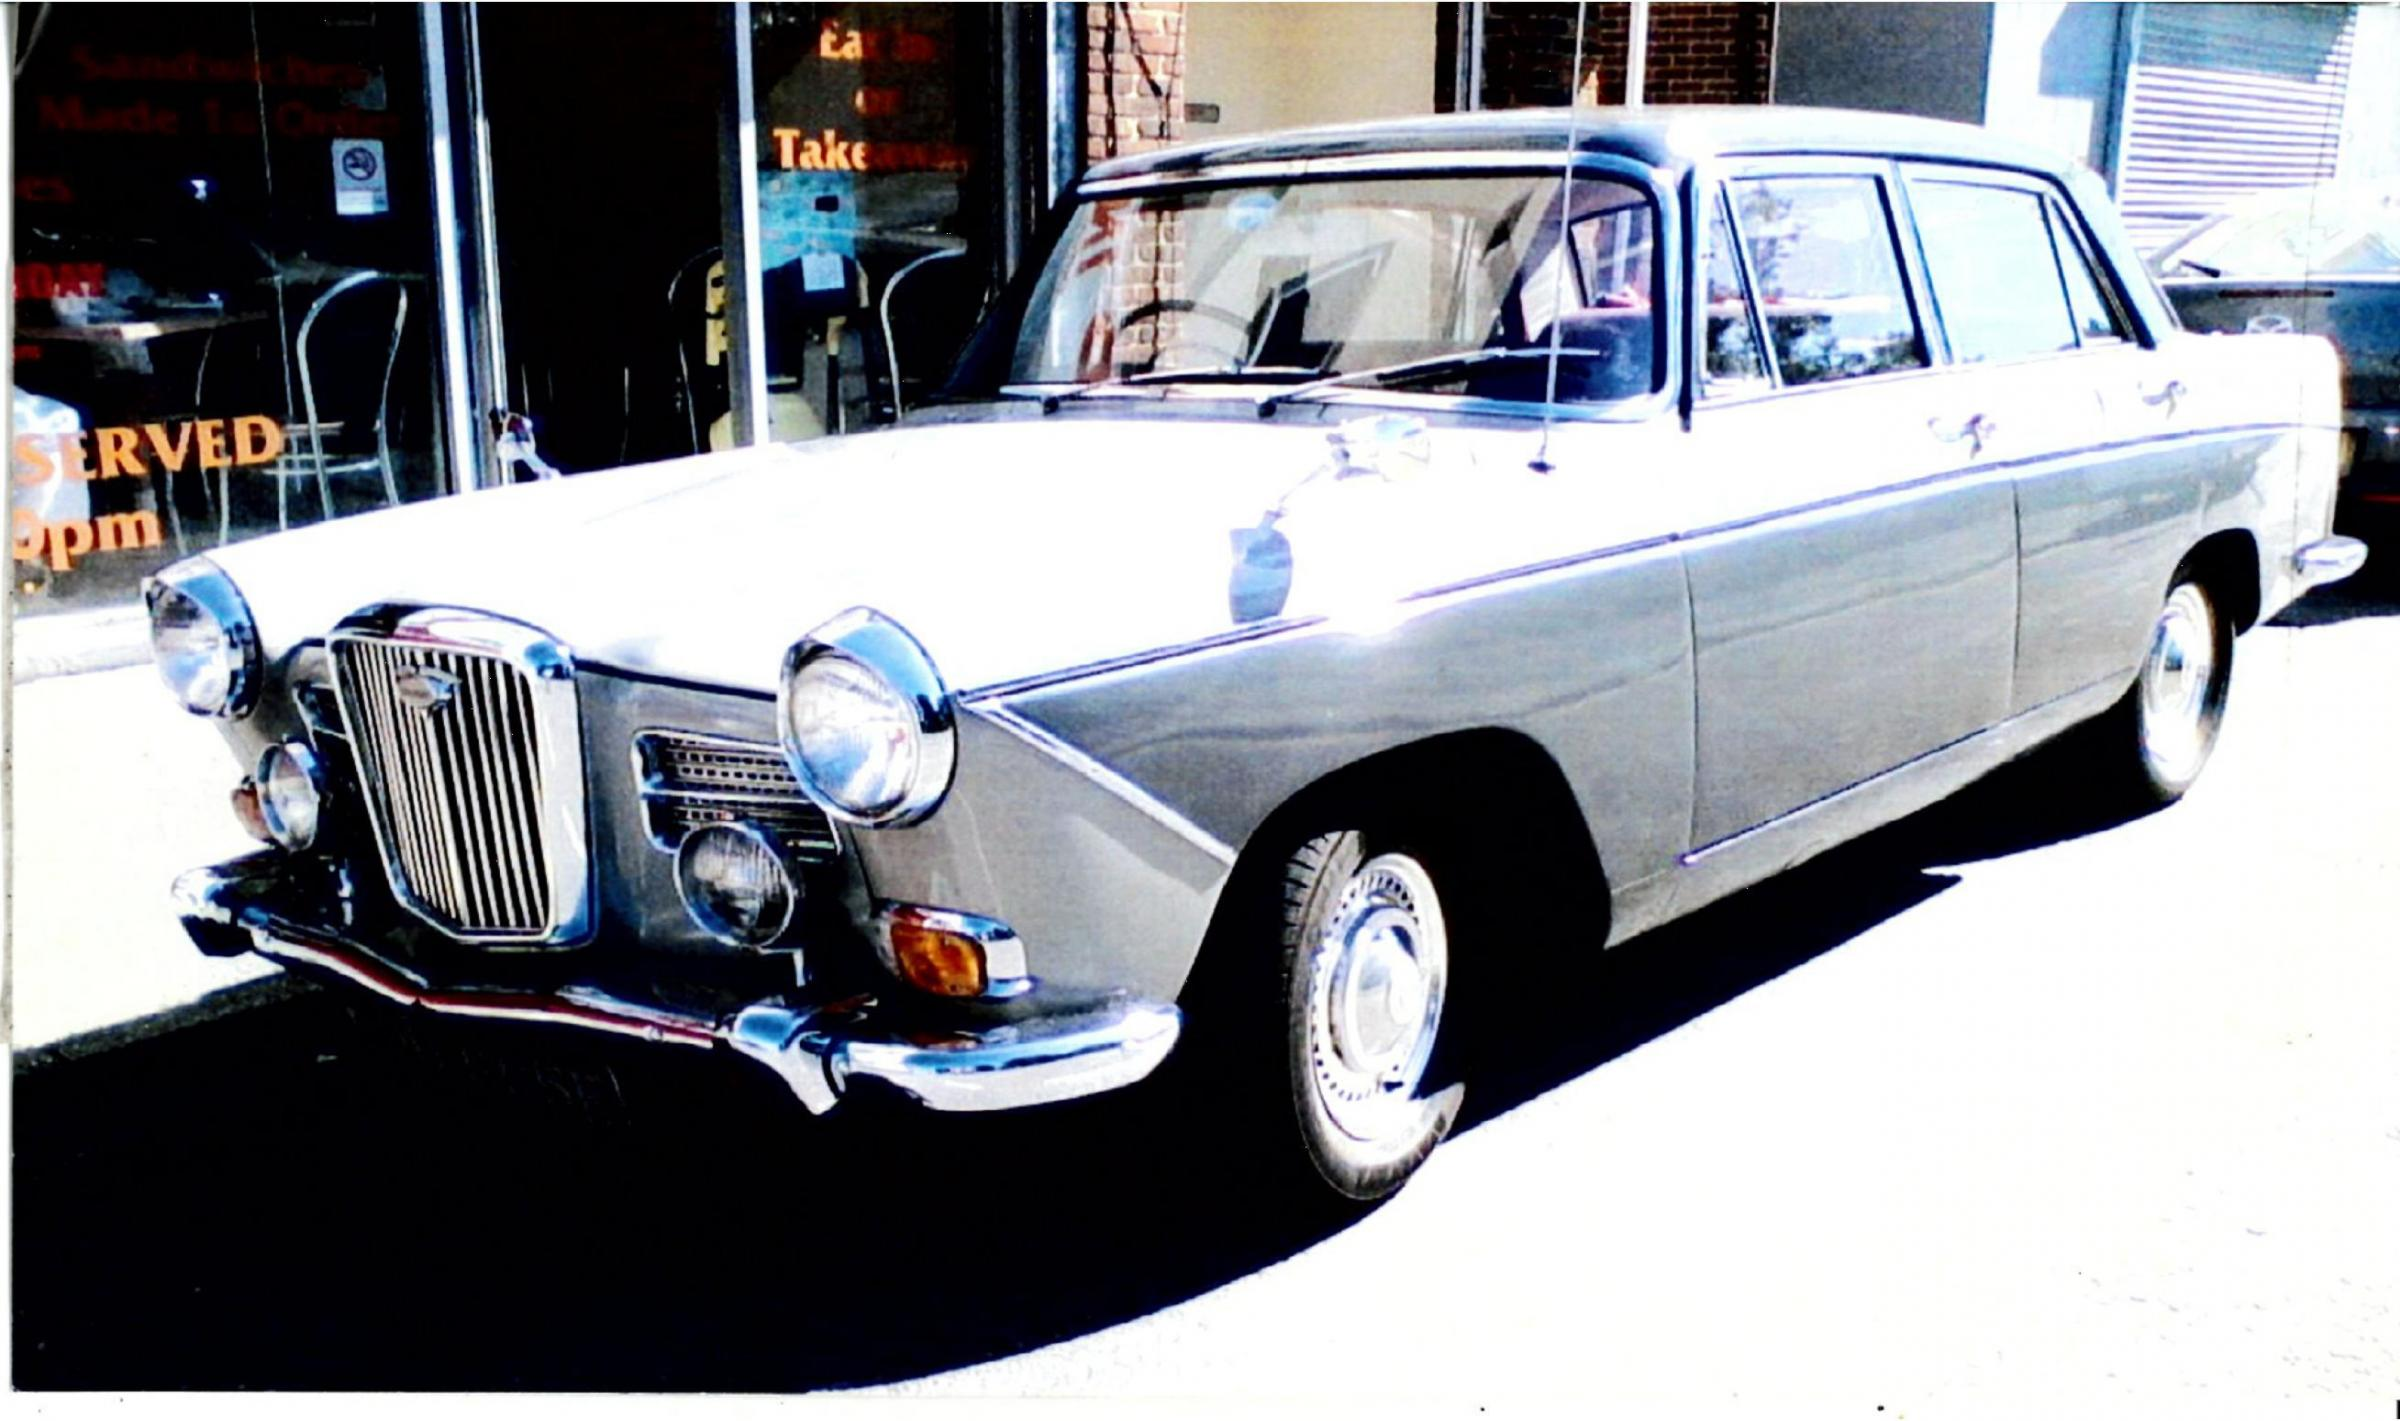 The 1967 Wolseley